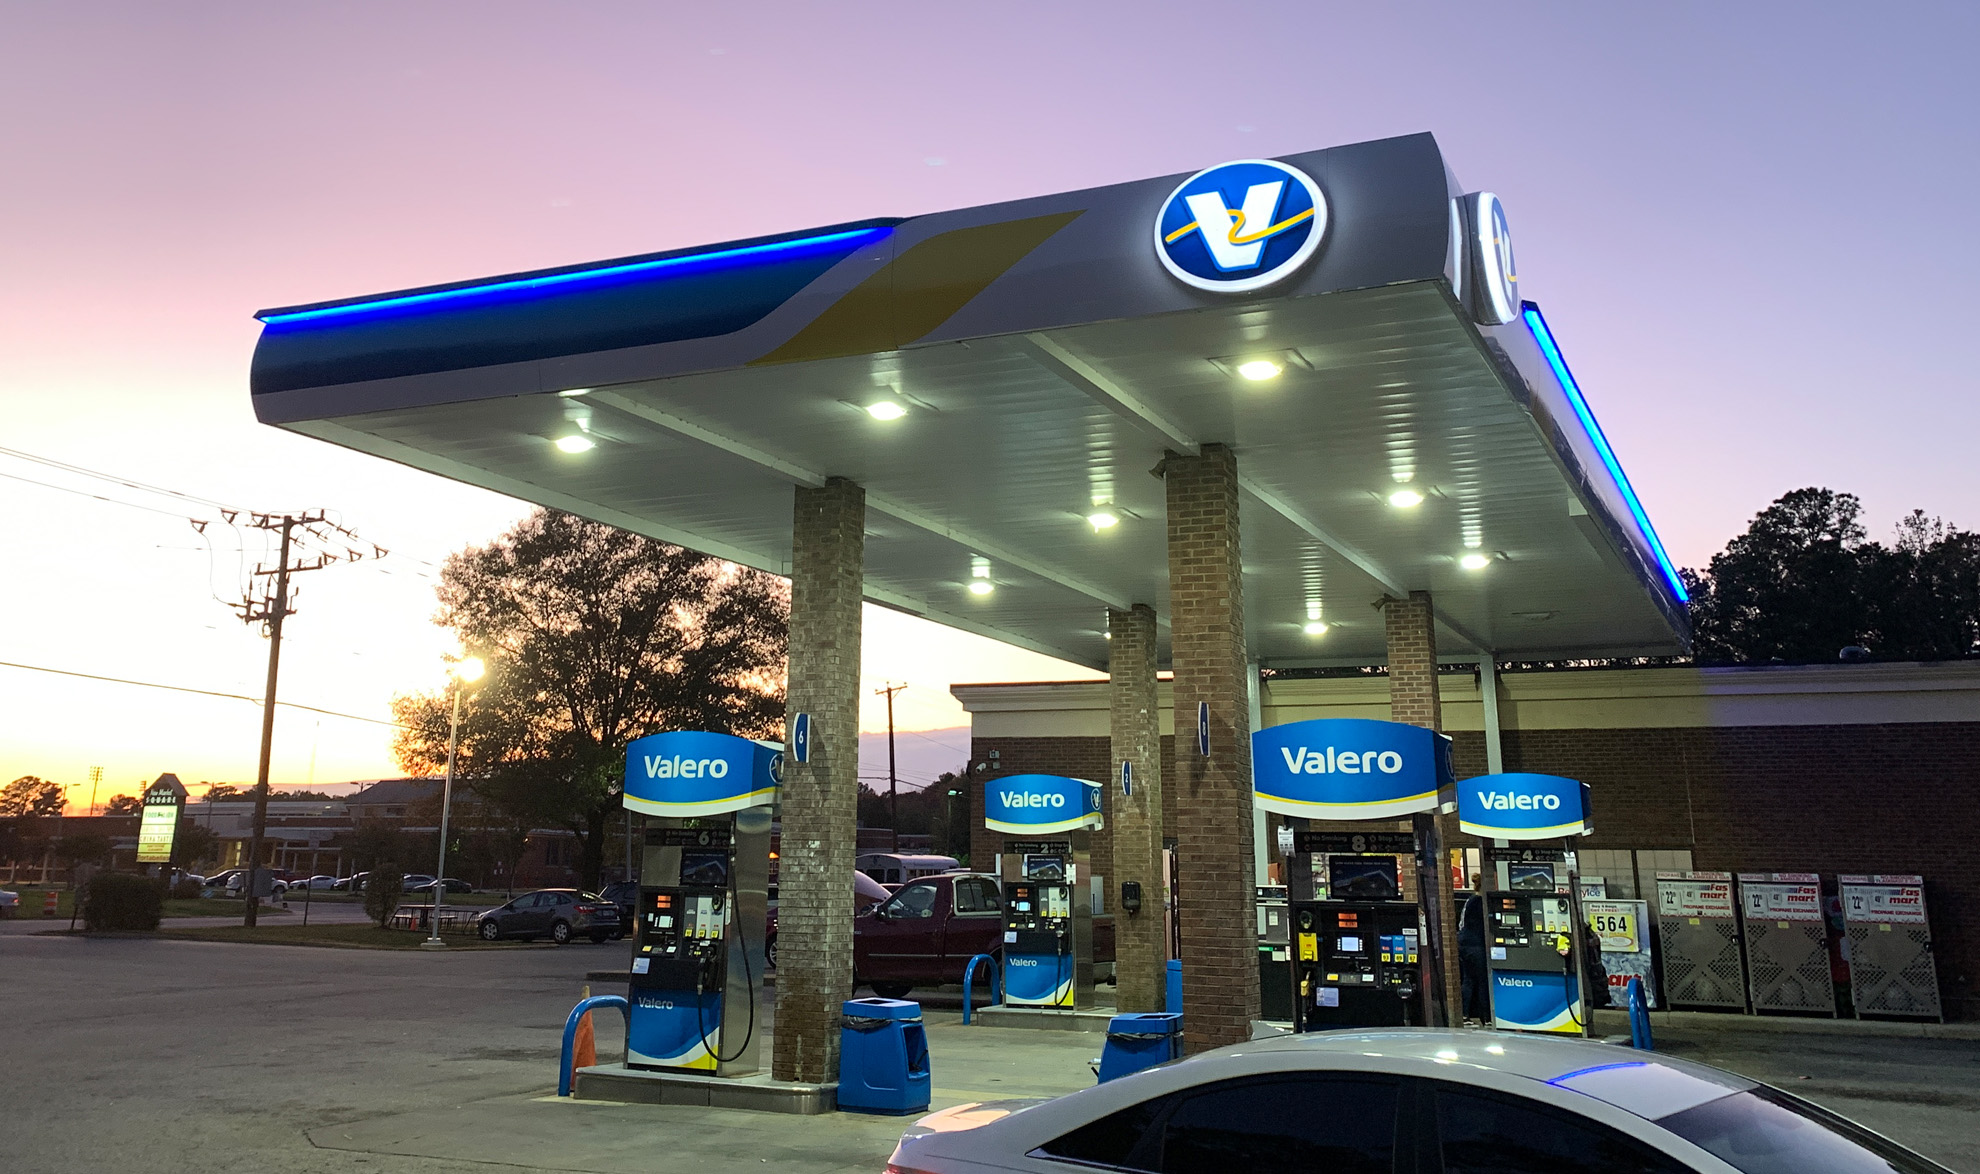 Valero fuel pumps and canopy with lighting